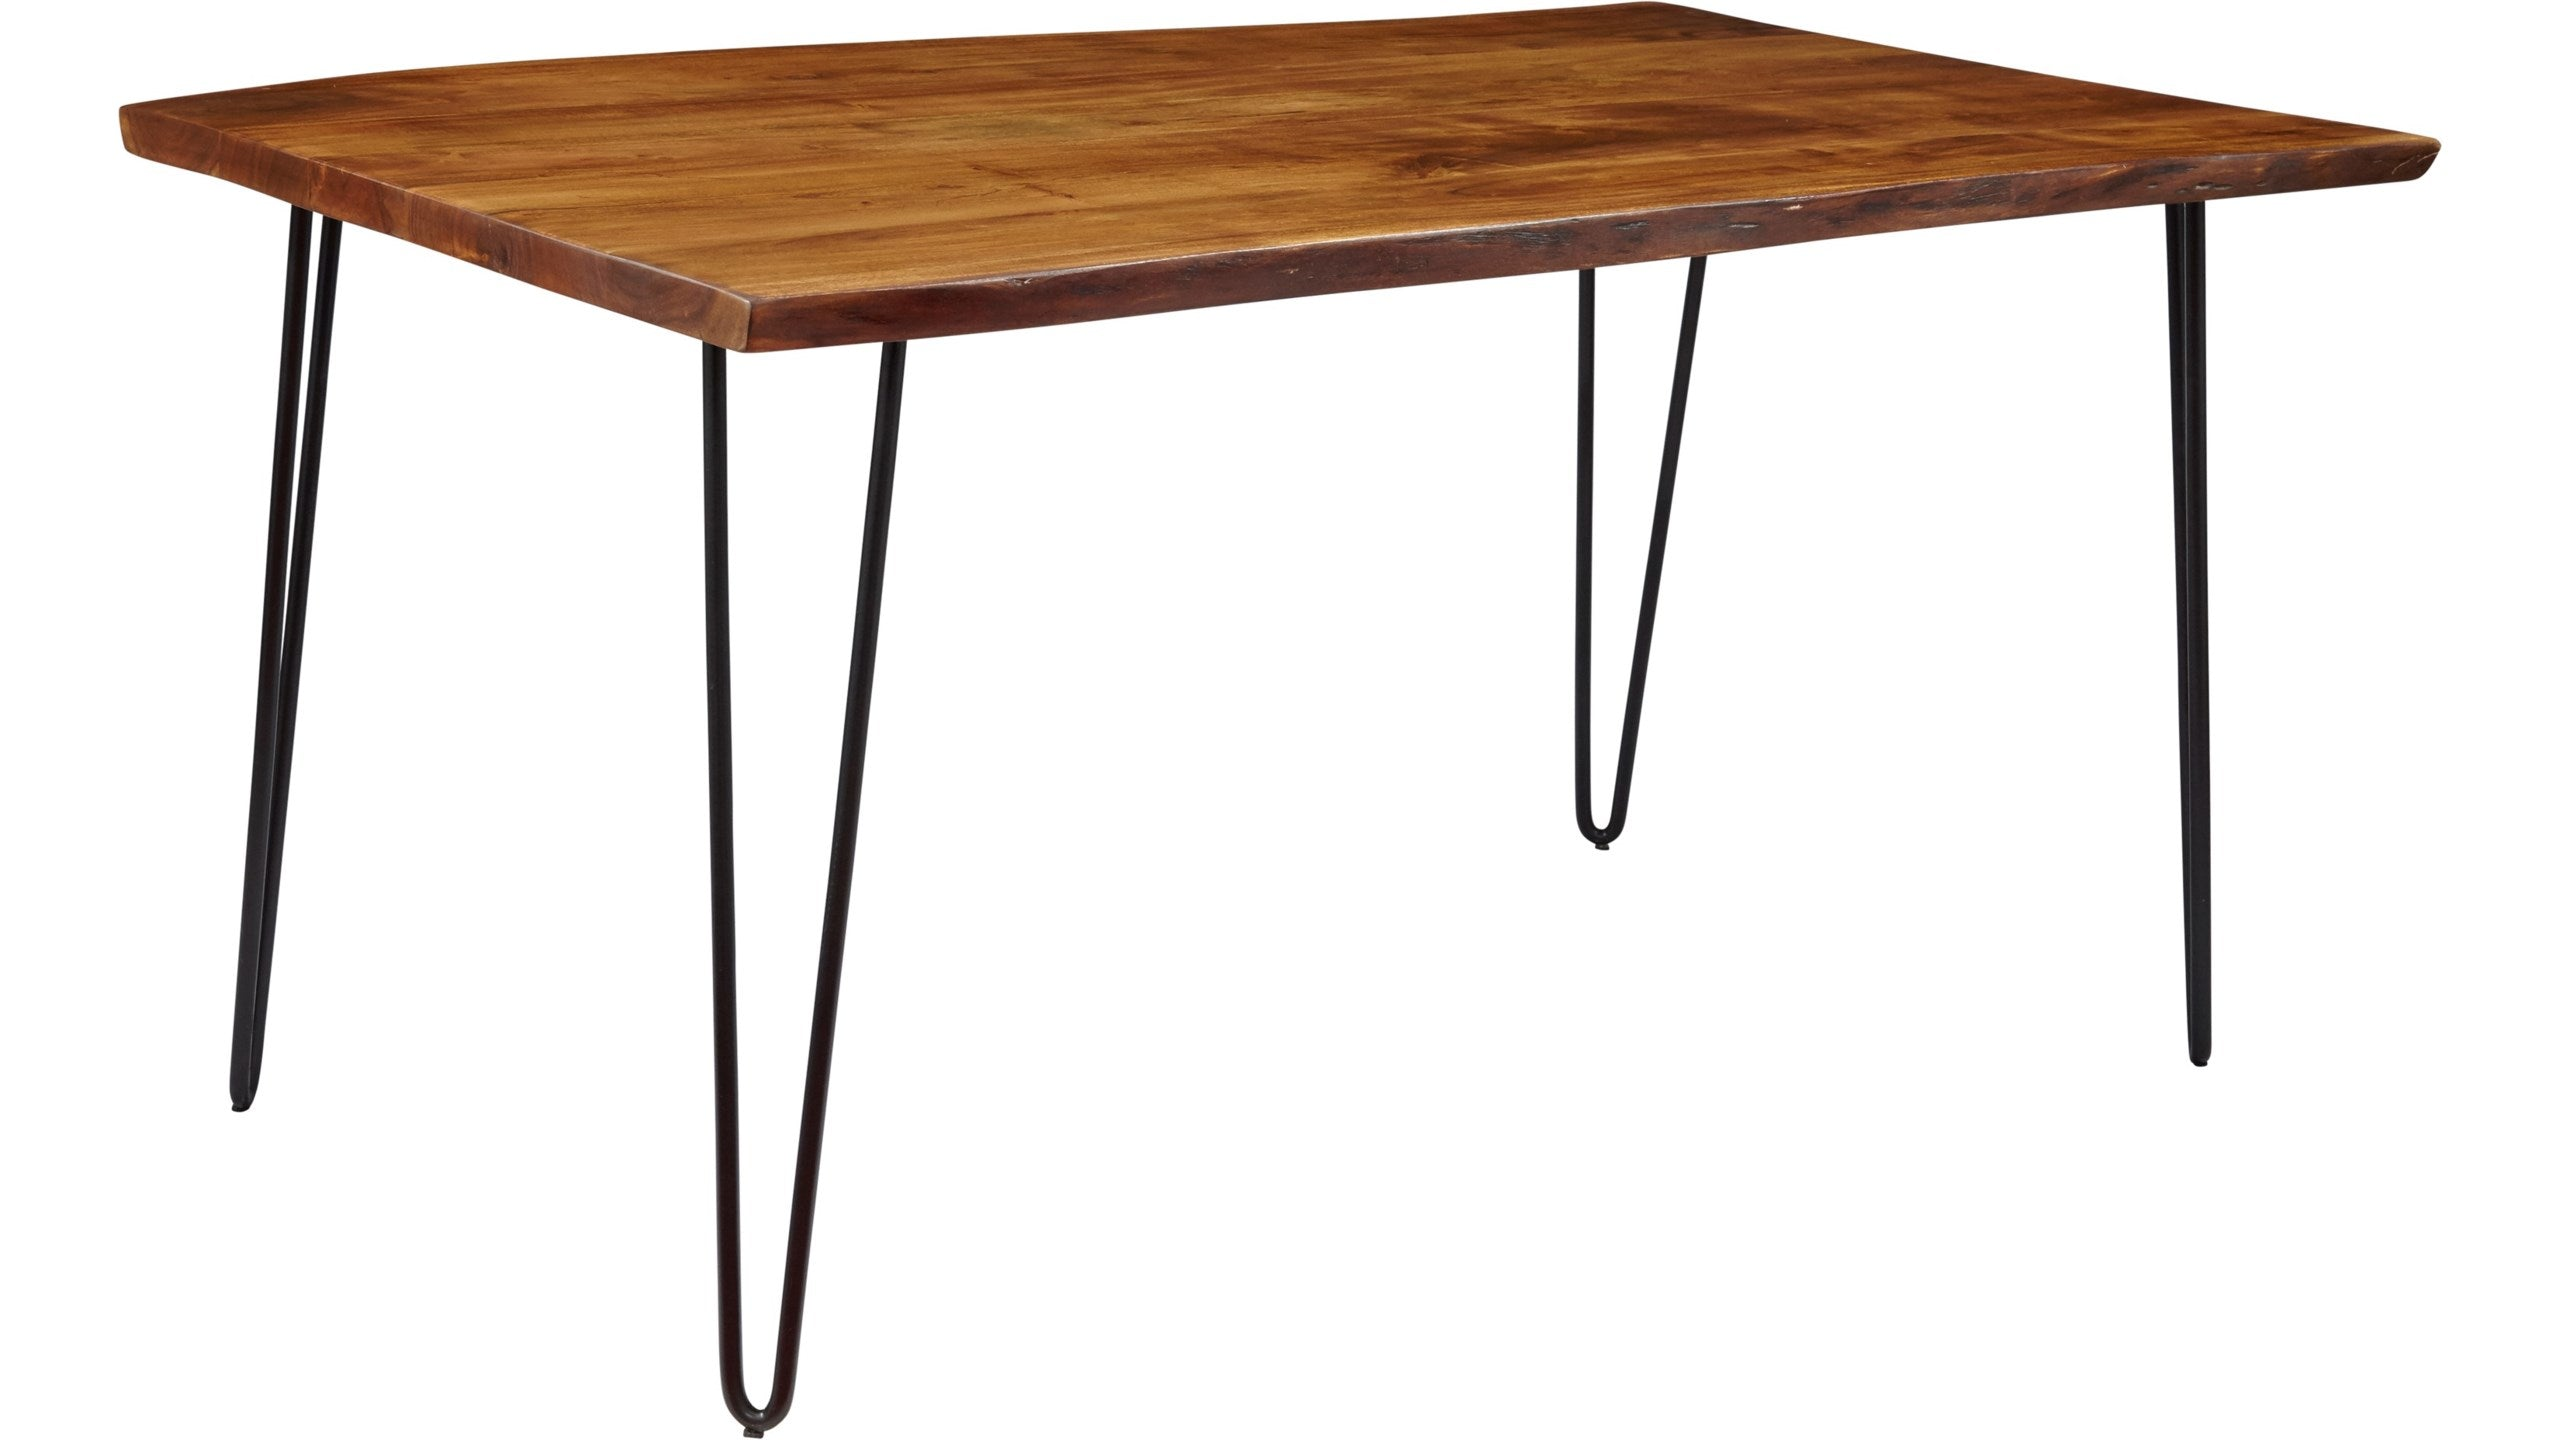 Nature Edge Natural Desk - Lifestyle Furniture